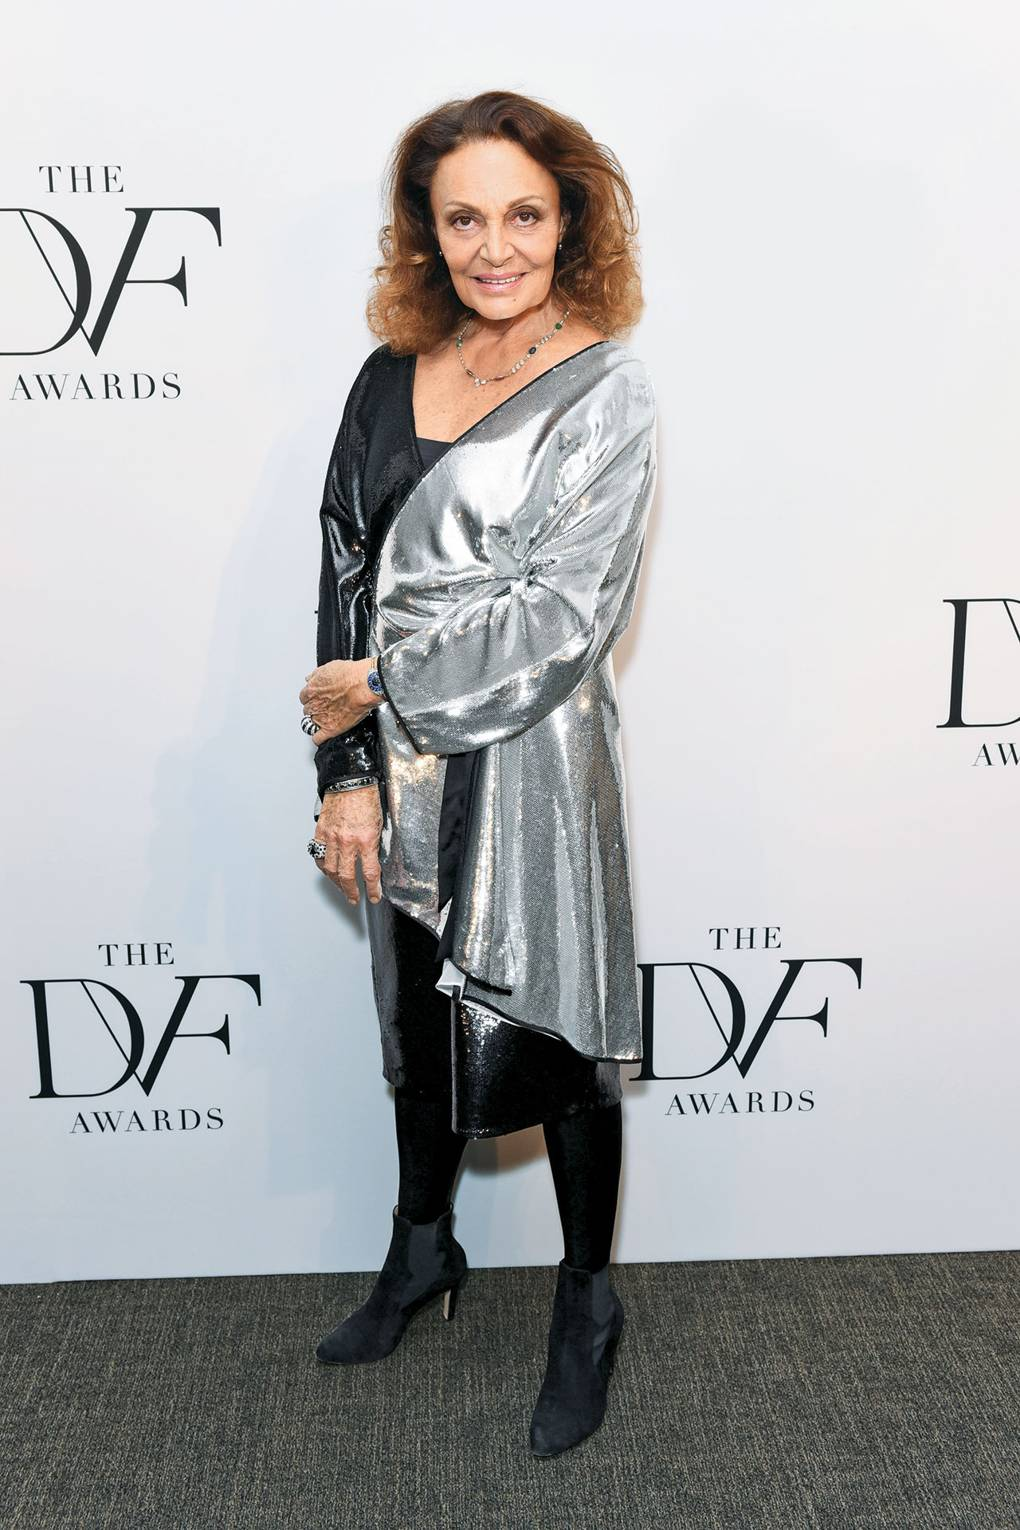 ecfae786a060e Ageless Fashion: The Style Rules For Dressing Your Age | British Vogue